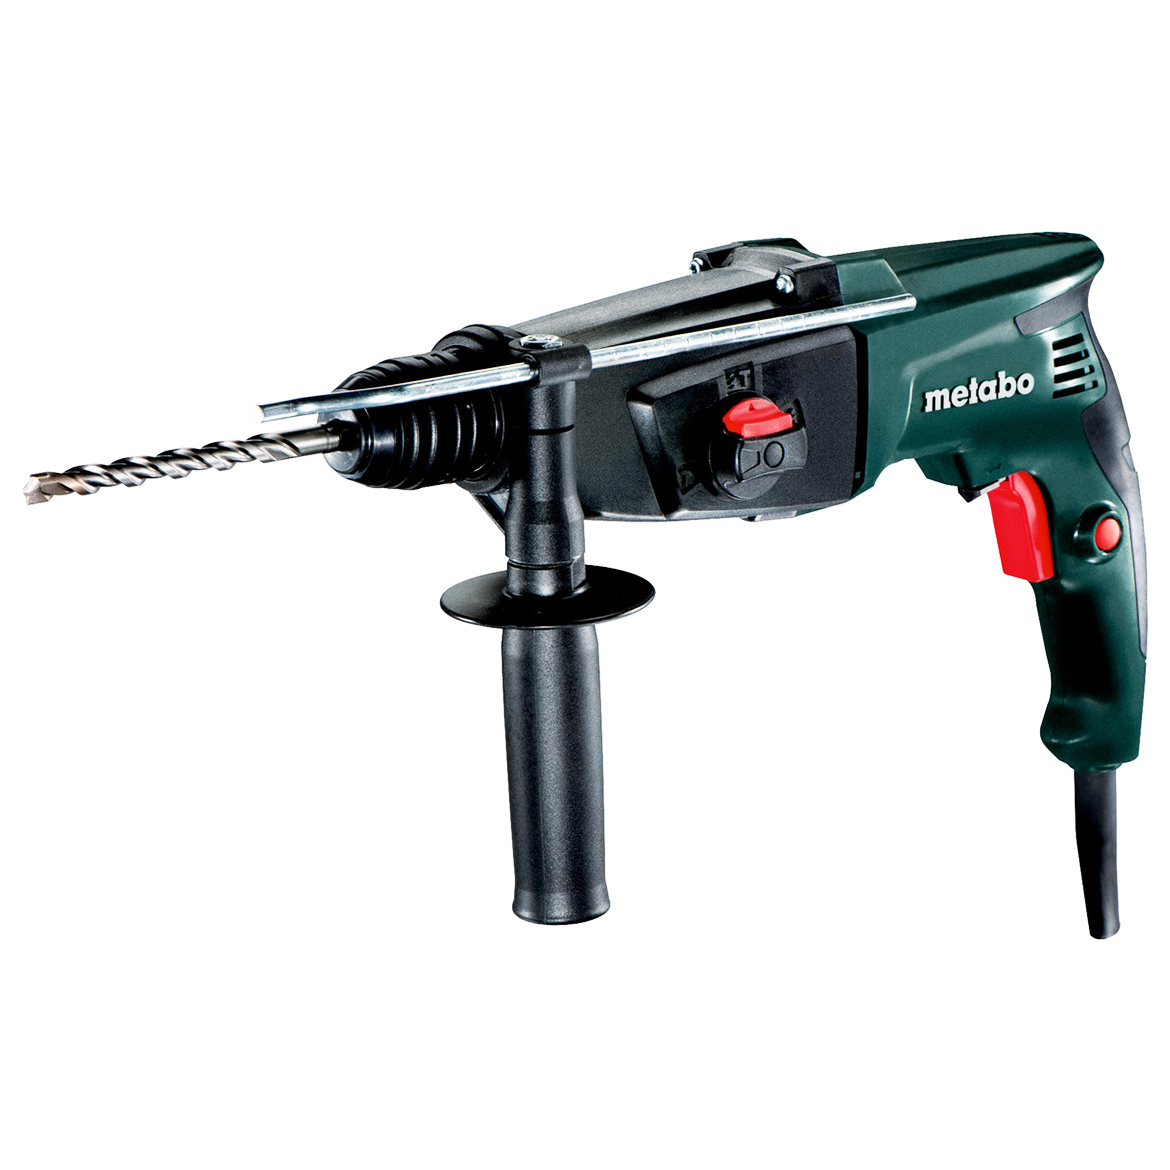 Metabo 606154420 1-Inch 7.0-Amp SDS-Plus Corded Combination Hammer Drill